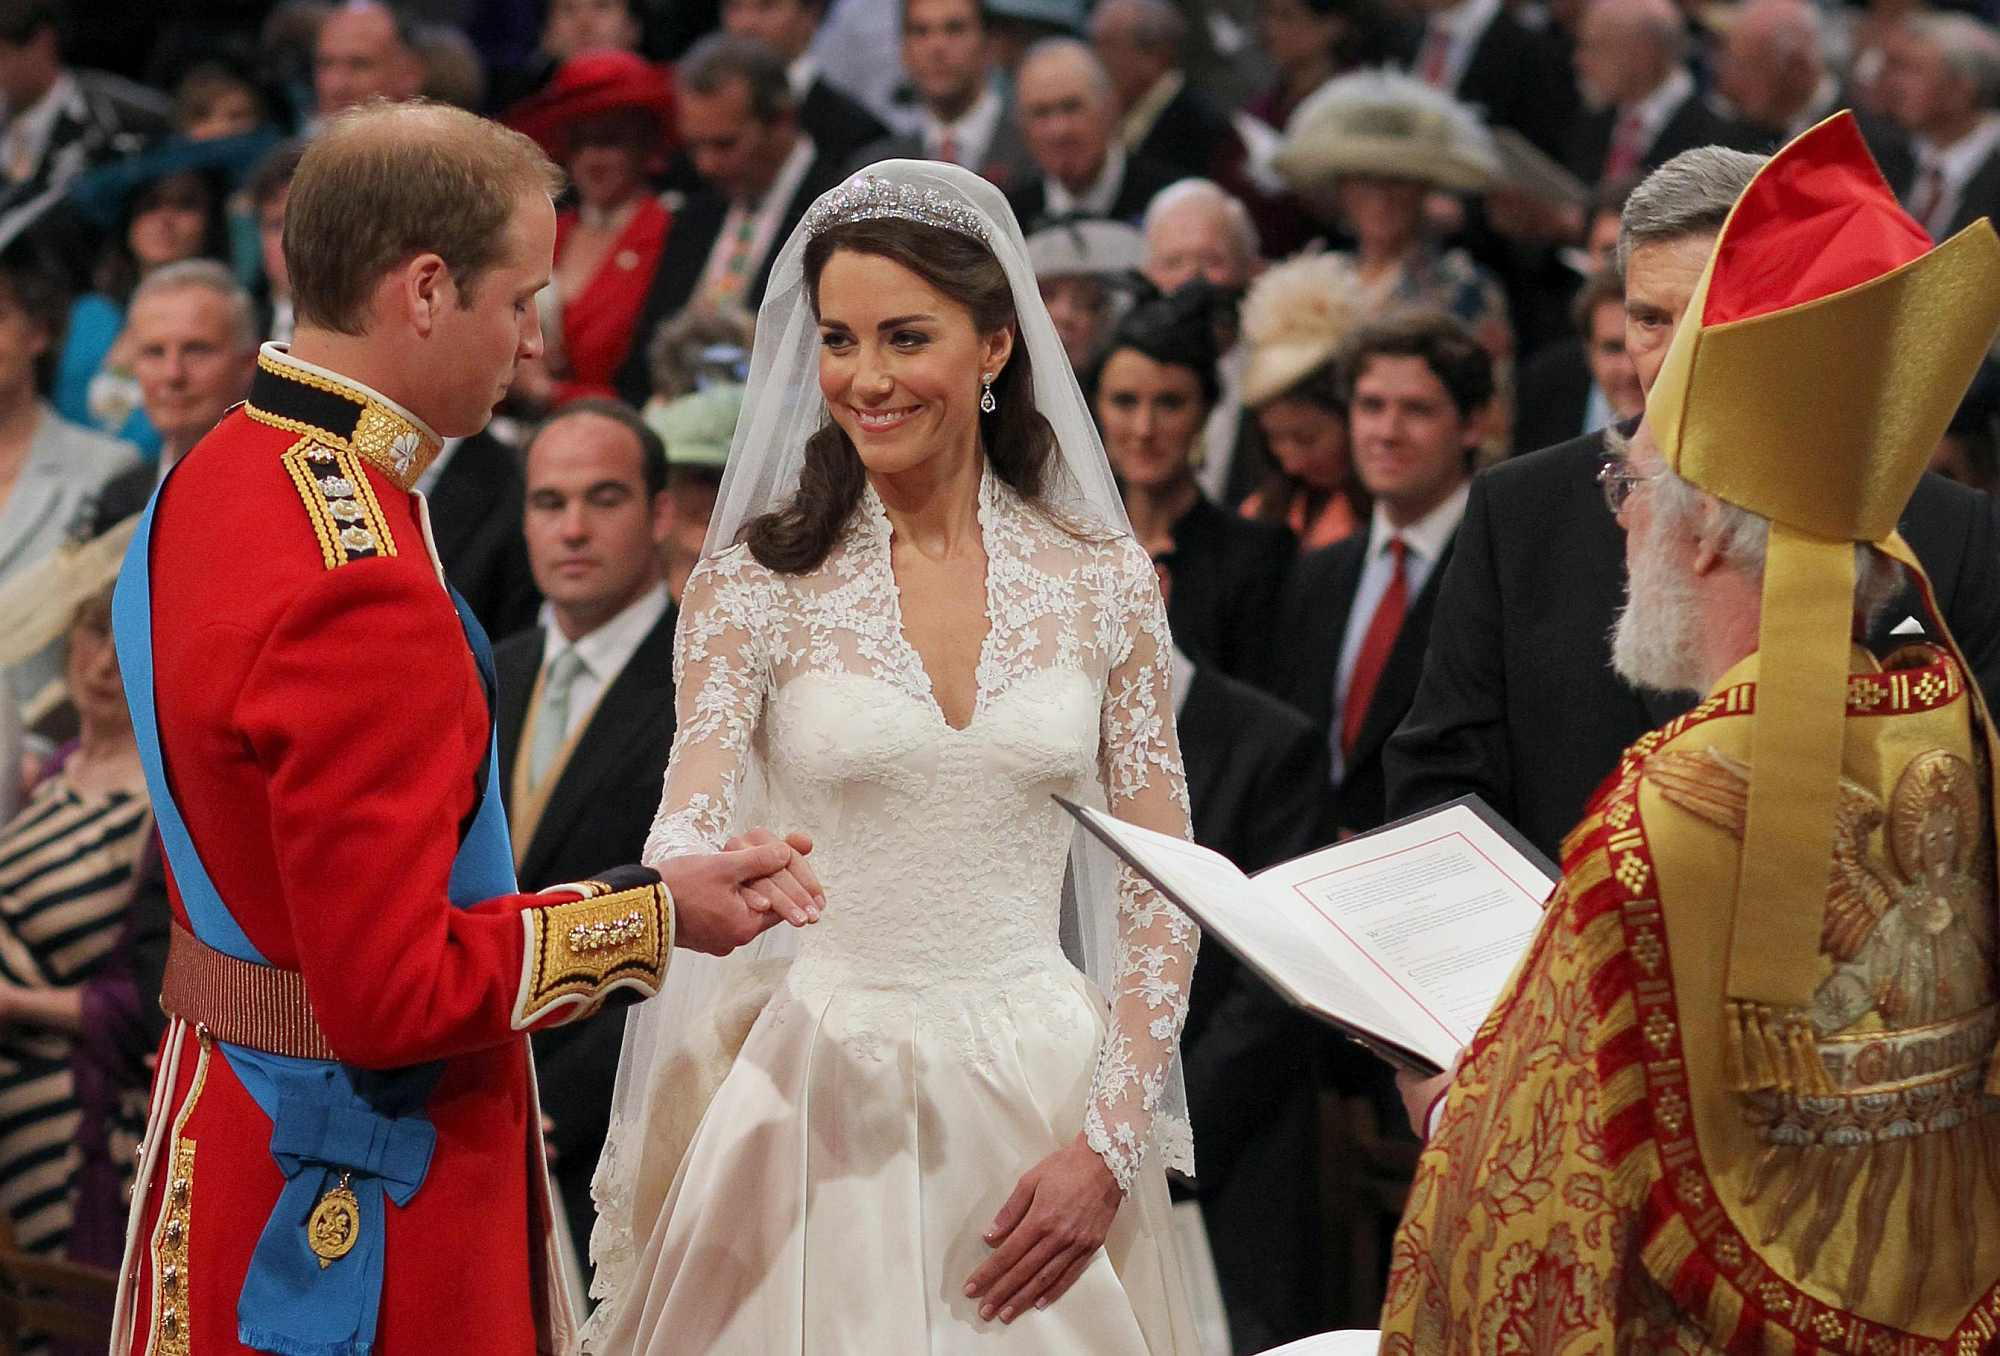 Prince William and Kate Middleton during their wedding at Westminster Abbey, London.